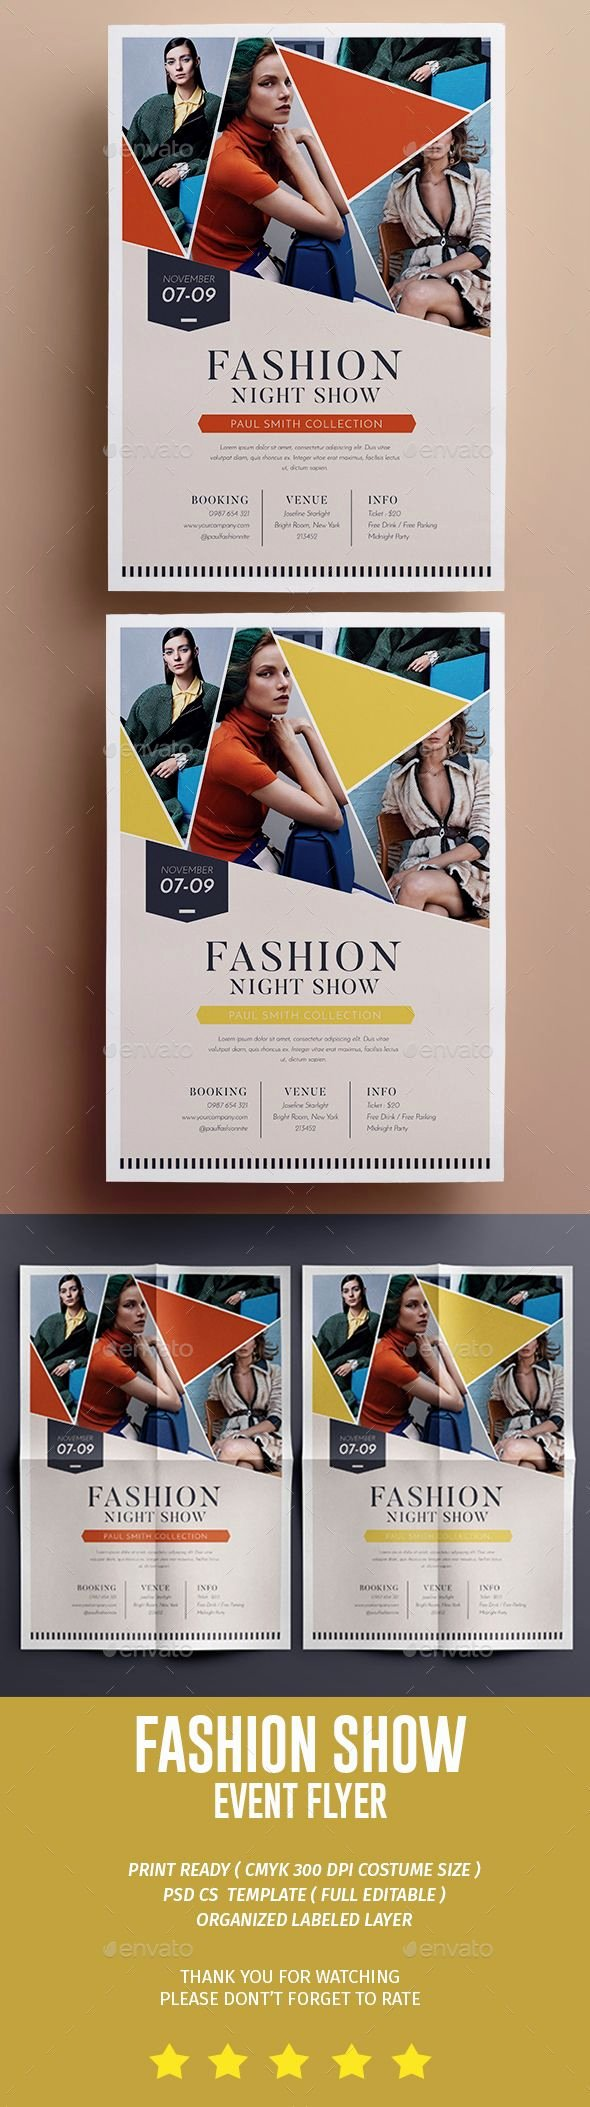 Fashion Show Flyer Template Fresh Best 25 event Flyers Ideas On Pinterest